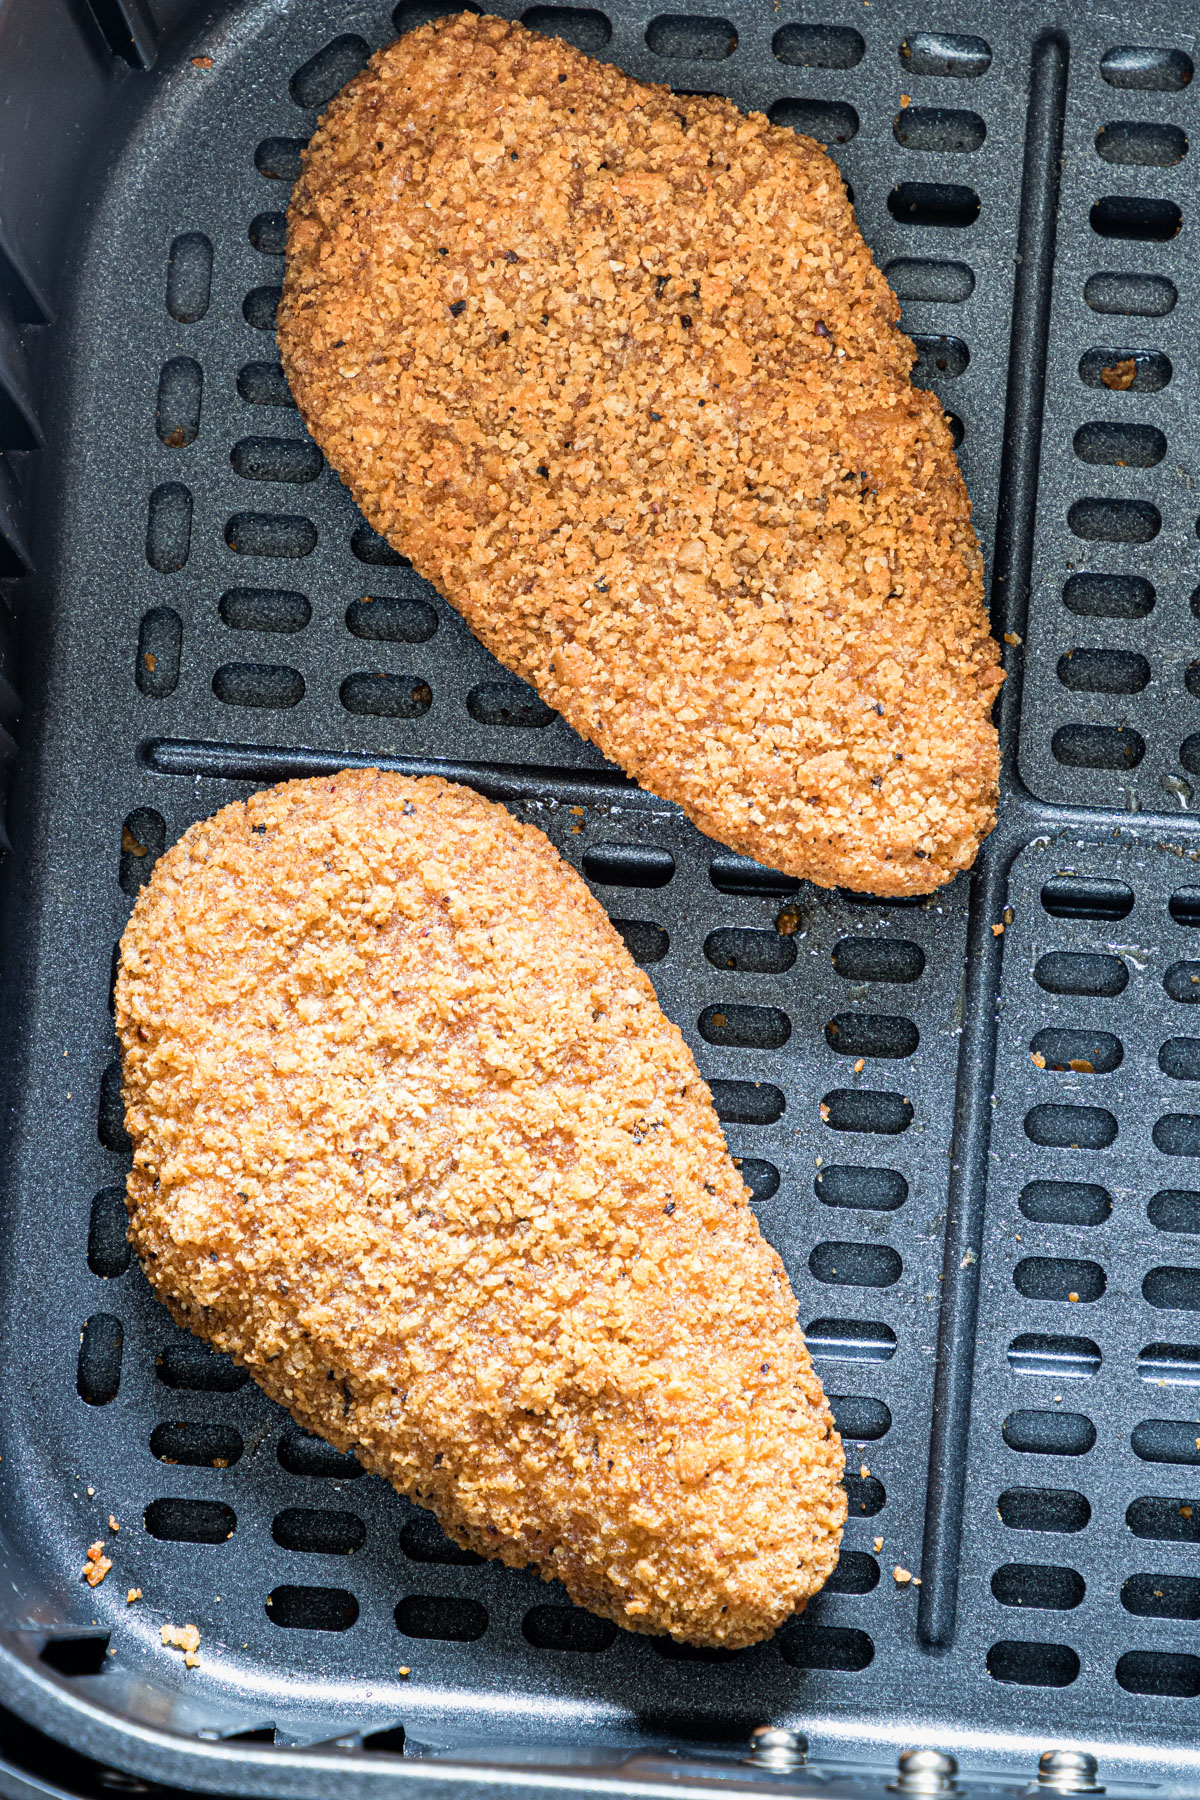 close up view of two pieces of fried chicken inside the air fryer basket